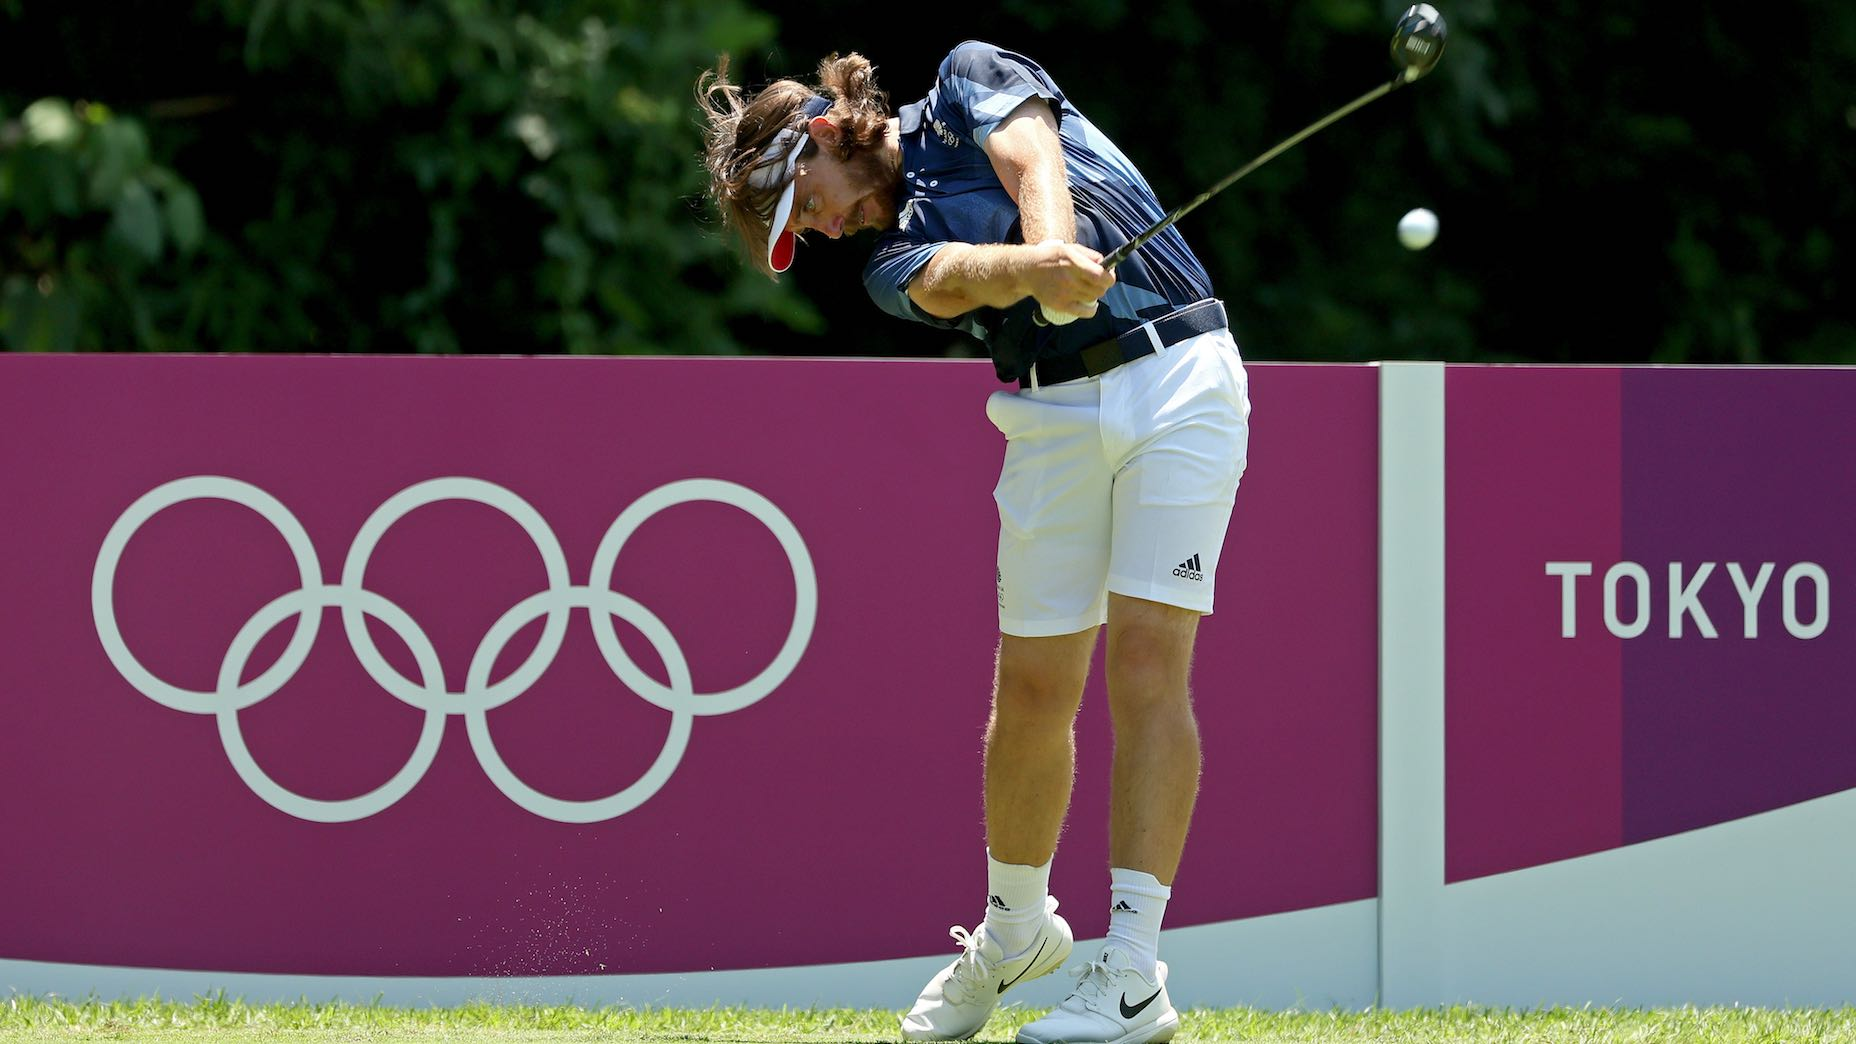 TOKYO, JAPAN - JULY 28: Tommy Fleetwood of team Great Brittain plays during a practice round at Kasumigaseki Country Club ahead of the Tokyo Olympic Games on July 28, 2021 in Tokyo, Japan. (Photo by Mike Ehrmann/Getty Images)